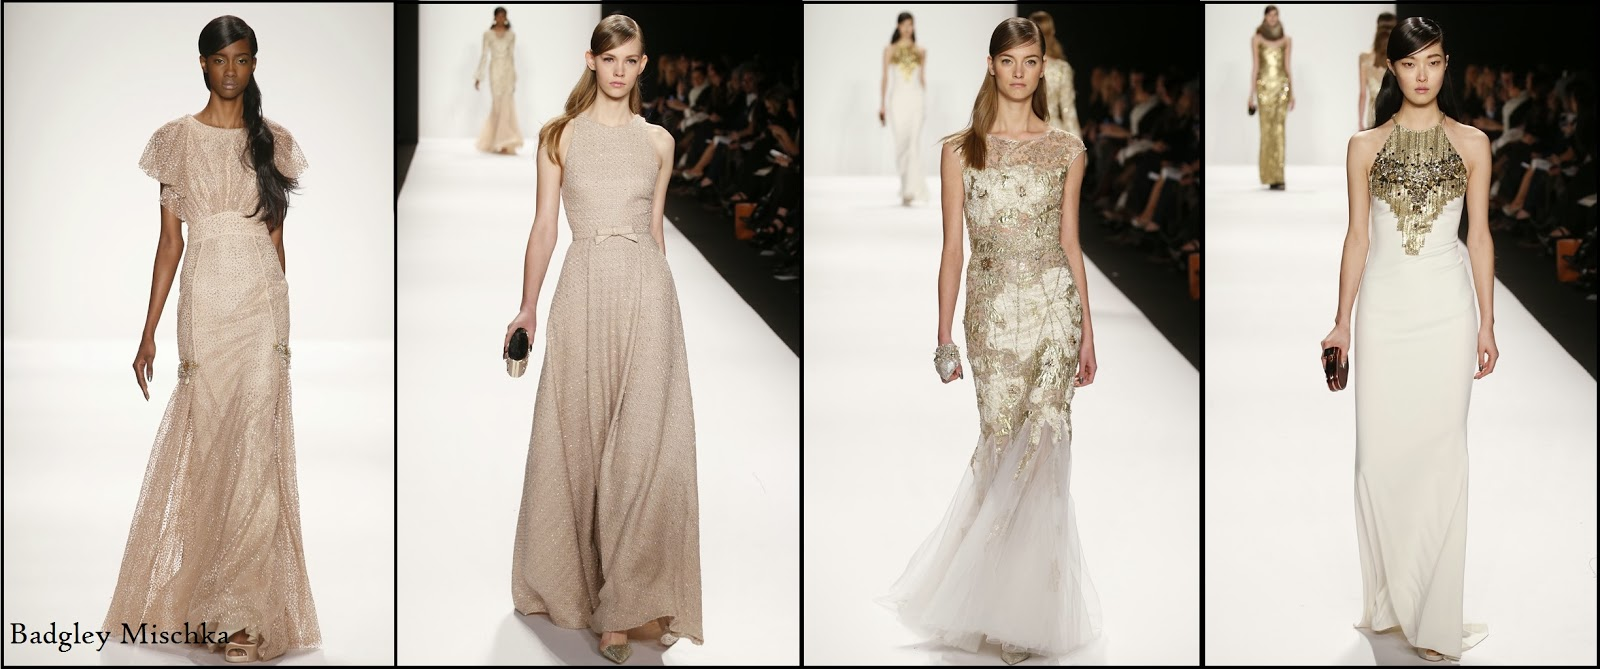 Belle of the Ball: Fashion Week - Bridal Designers Recap